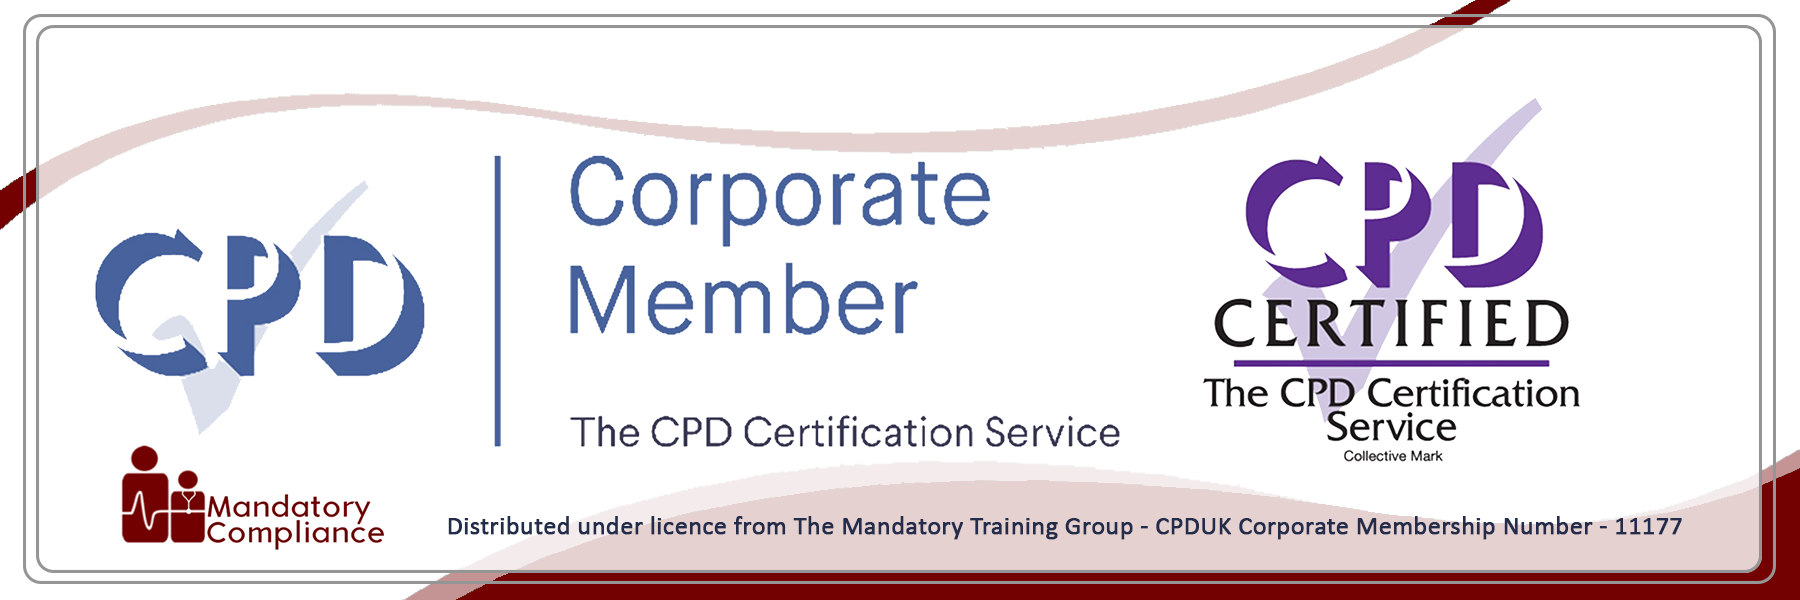 Health and Wellness at Work Training - Online Training Course - CPD Accredited - Mandatory Compliance UK -